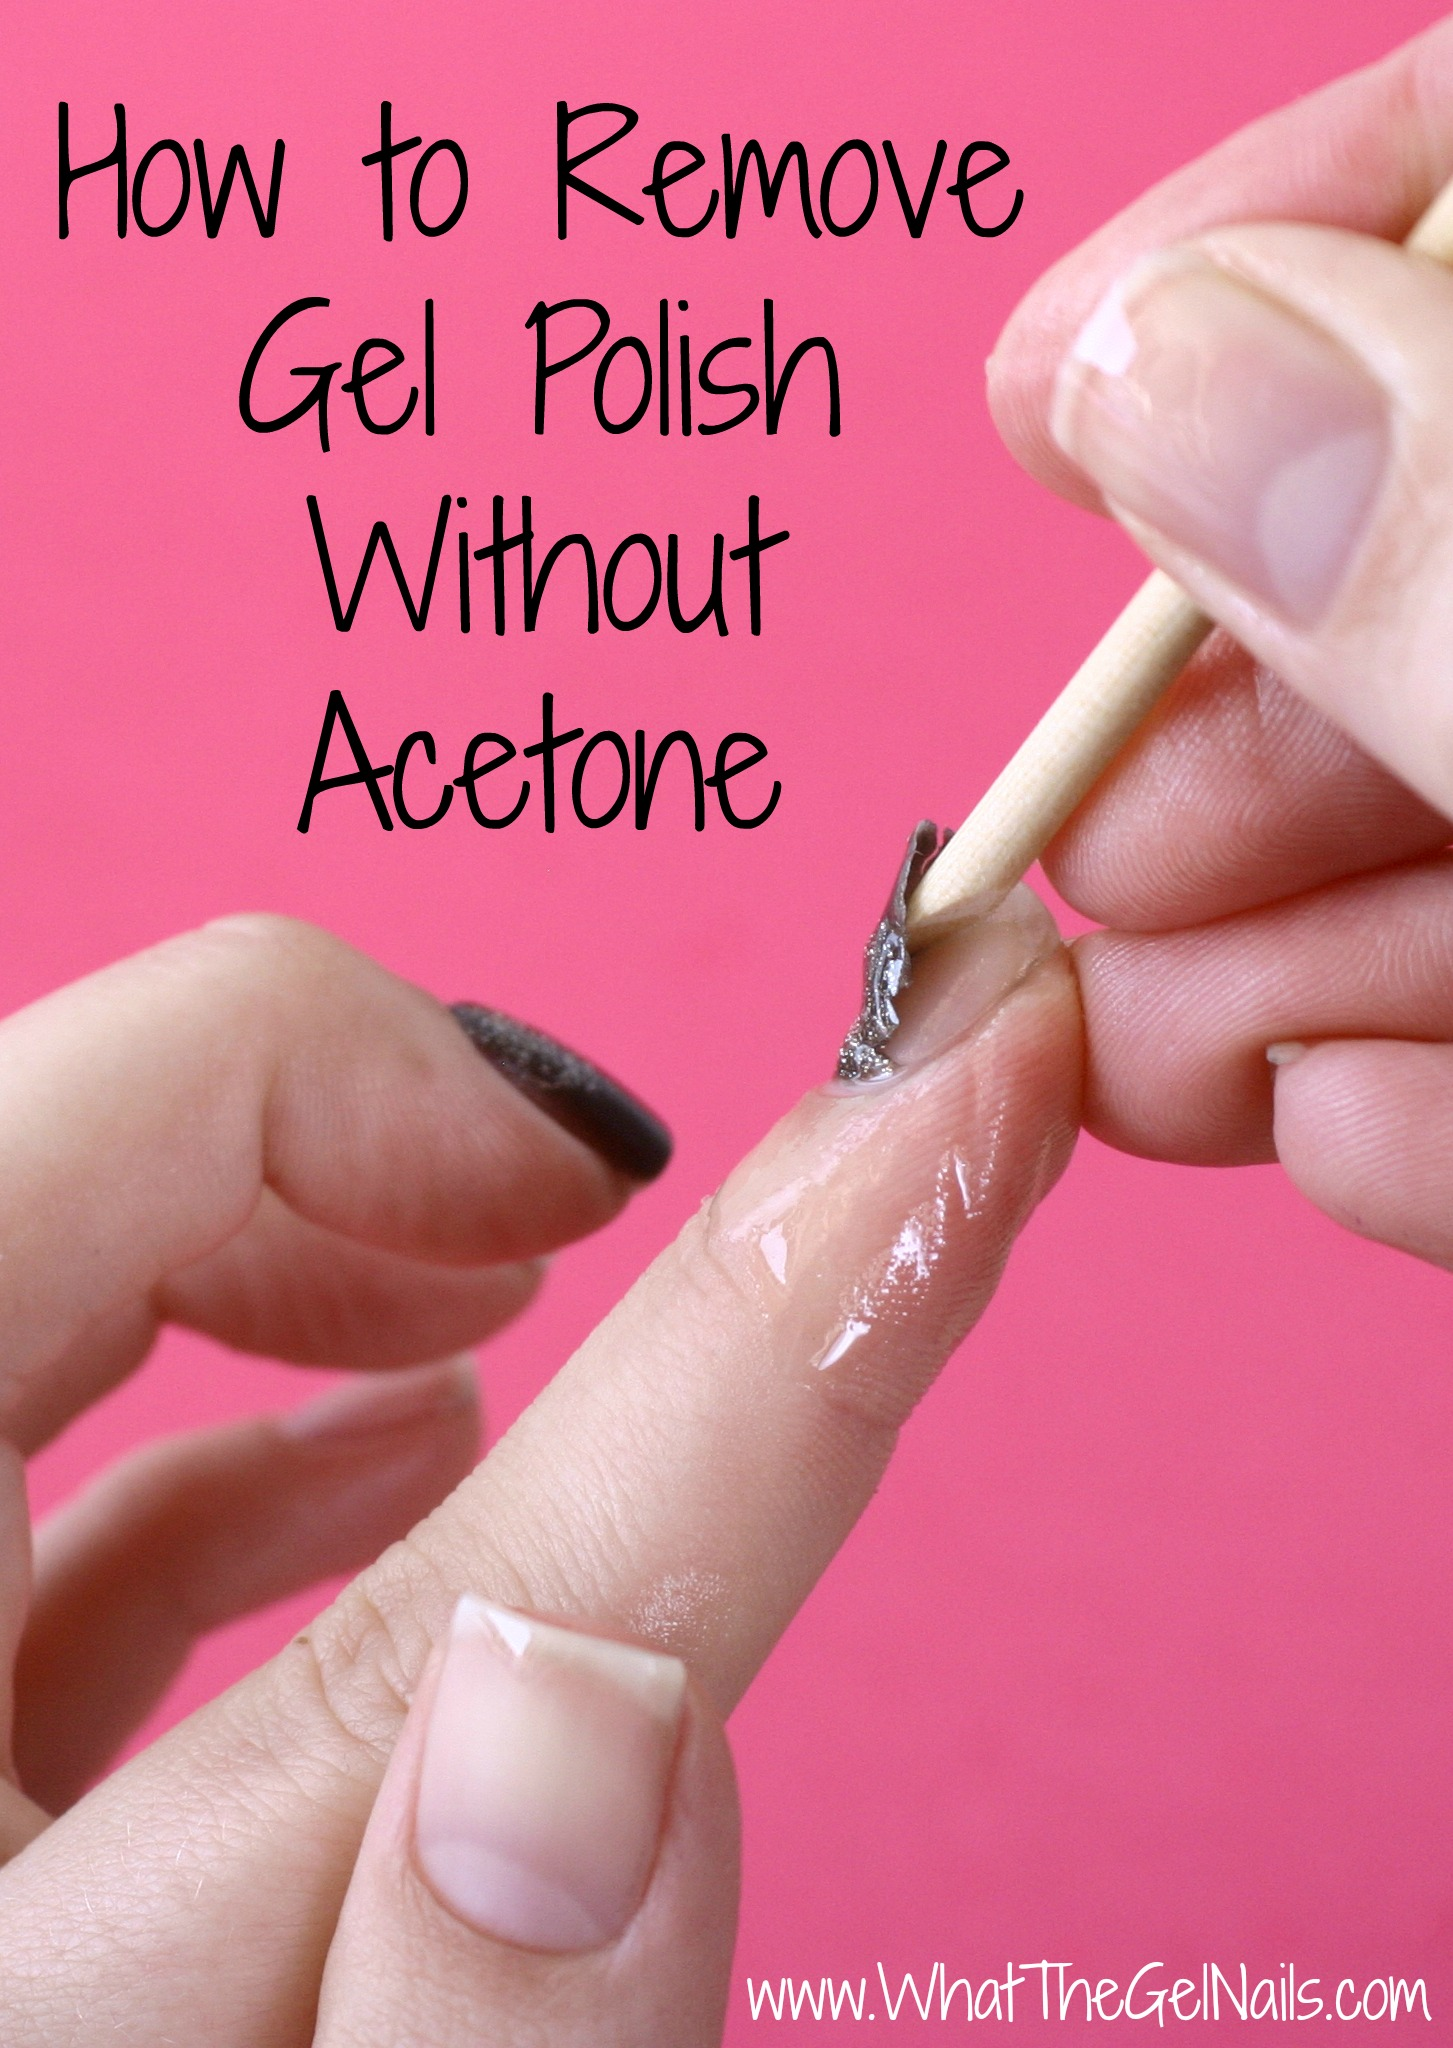 How to remove gel polish without acetoneg remove gel polish without acetone solutioingenieria